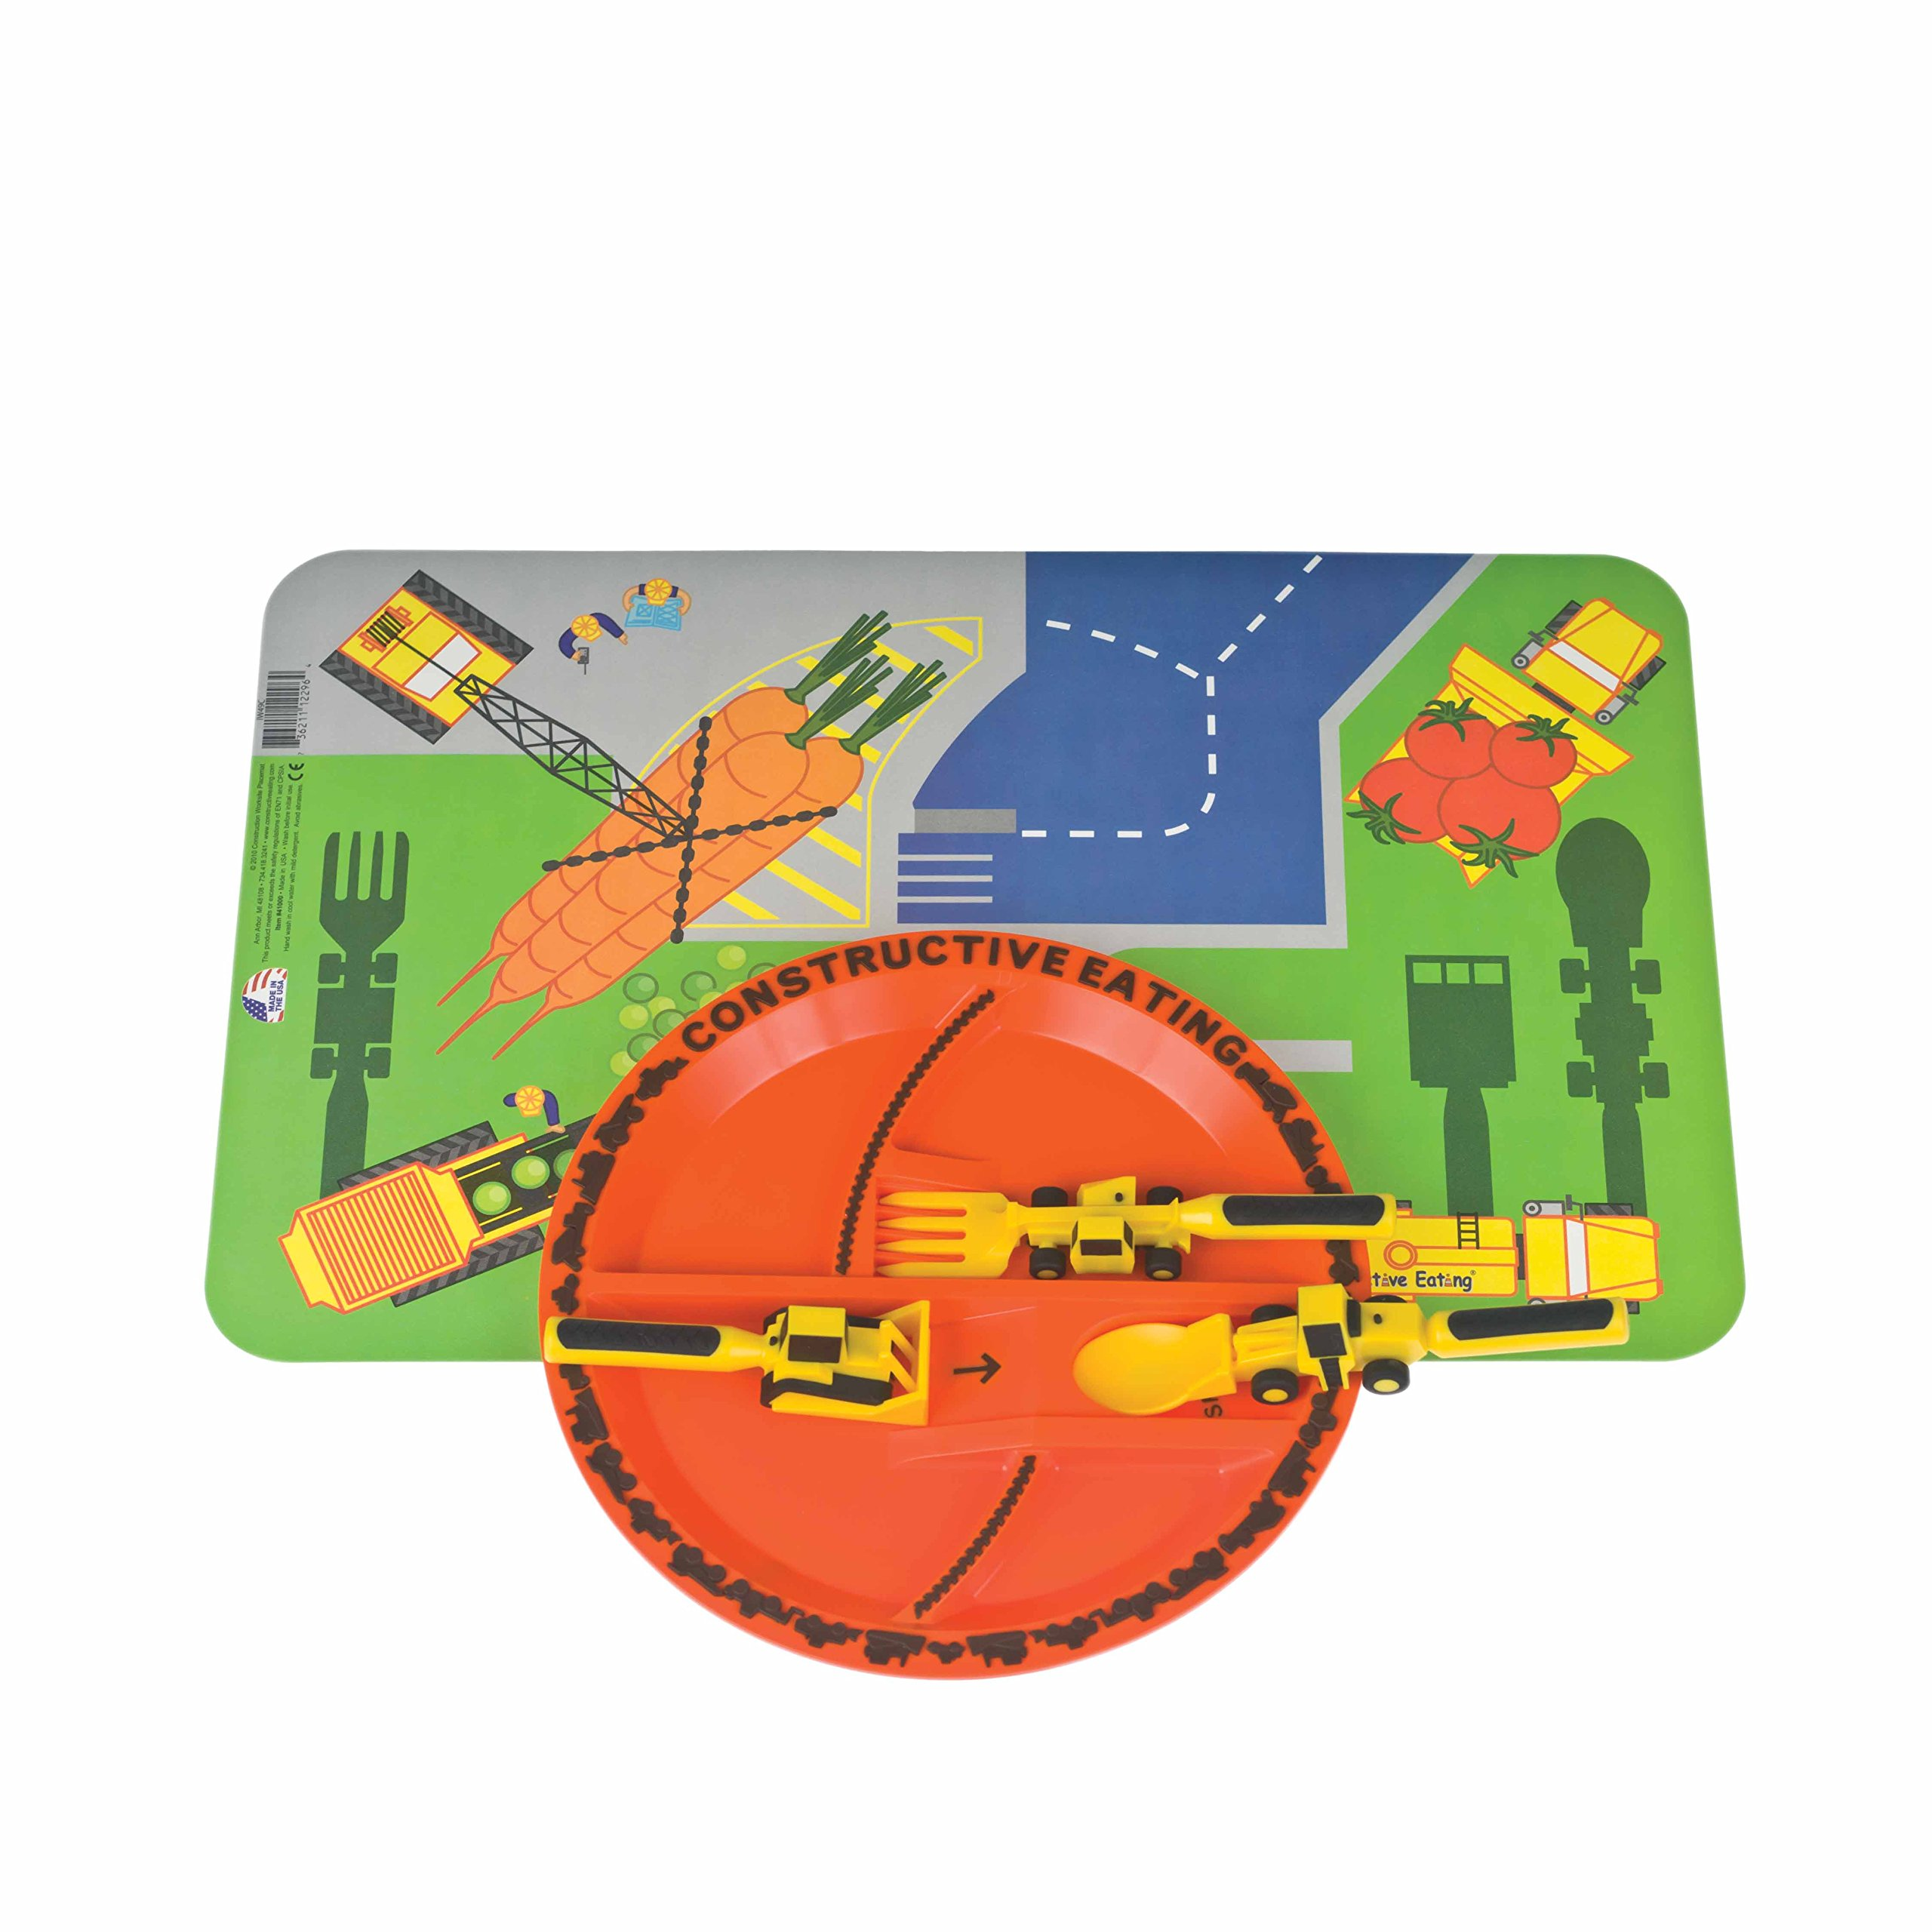 Constructive Eating Construction Combo with Utensil Set, Plate, and Placemat for Toddlers, Infants, Babies and Kids - Flatware Set is Made with FDA Approved Materials for Safe and Fun Eating